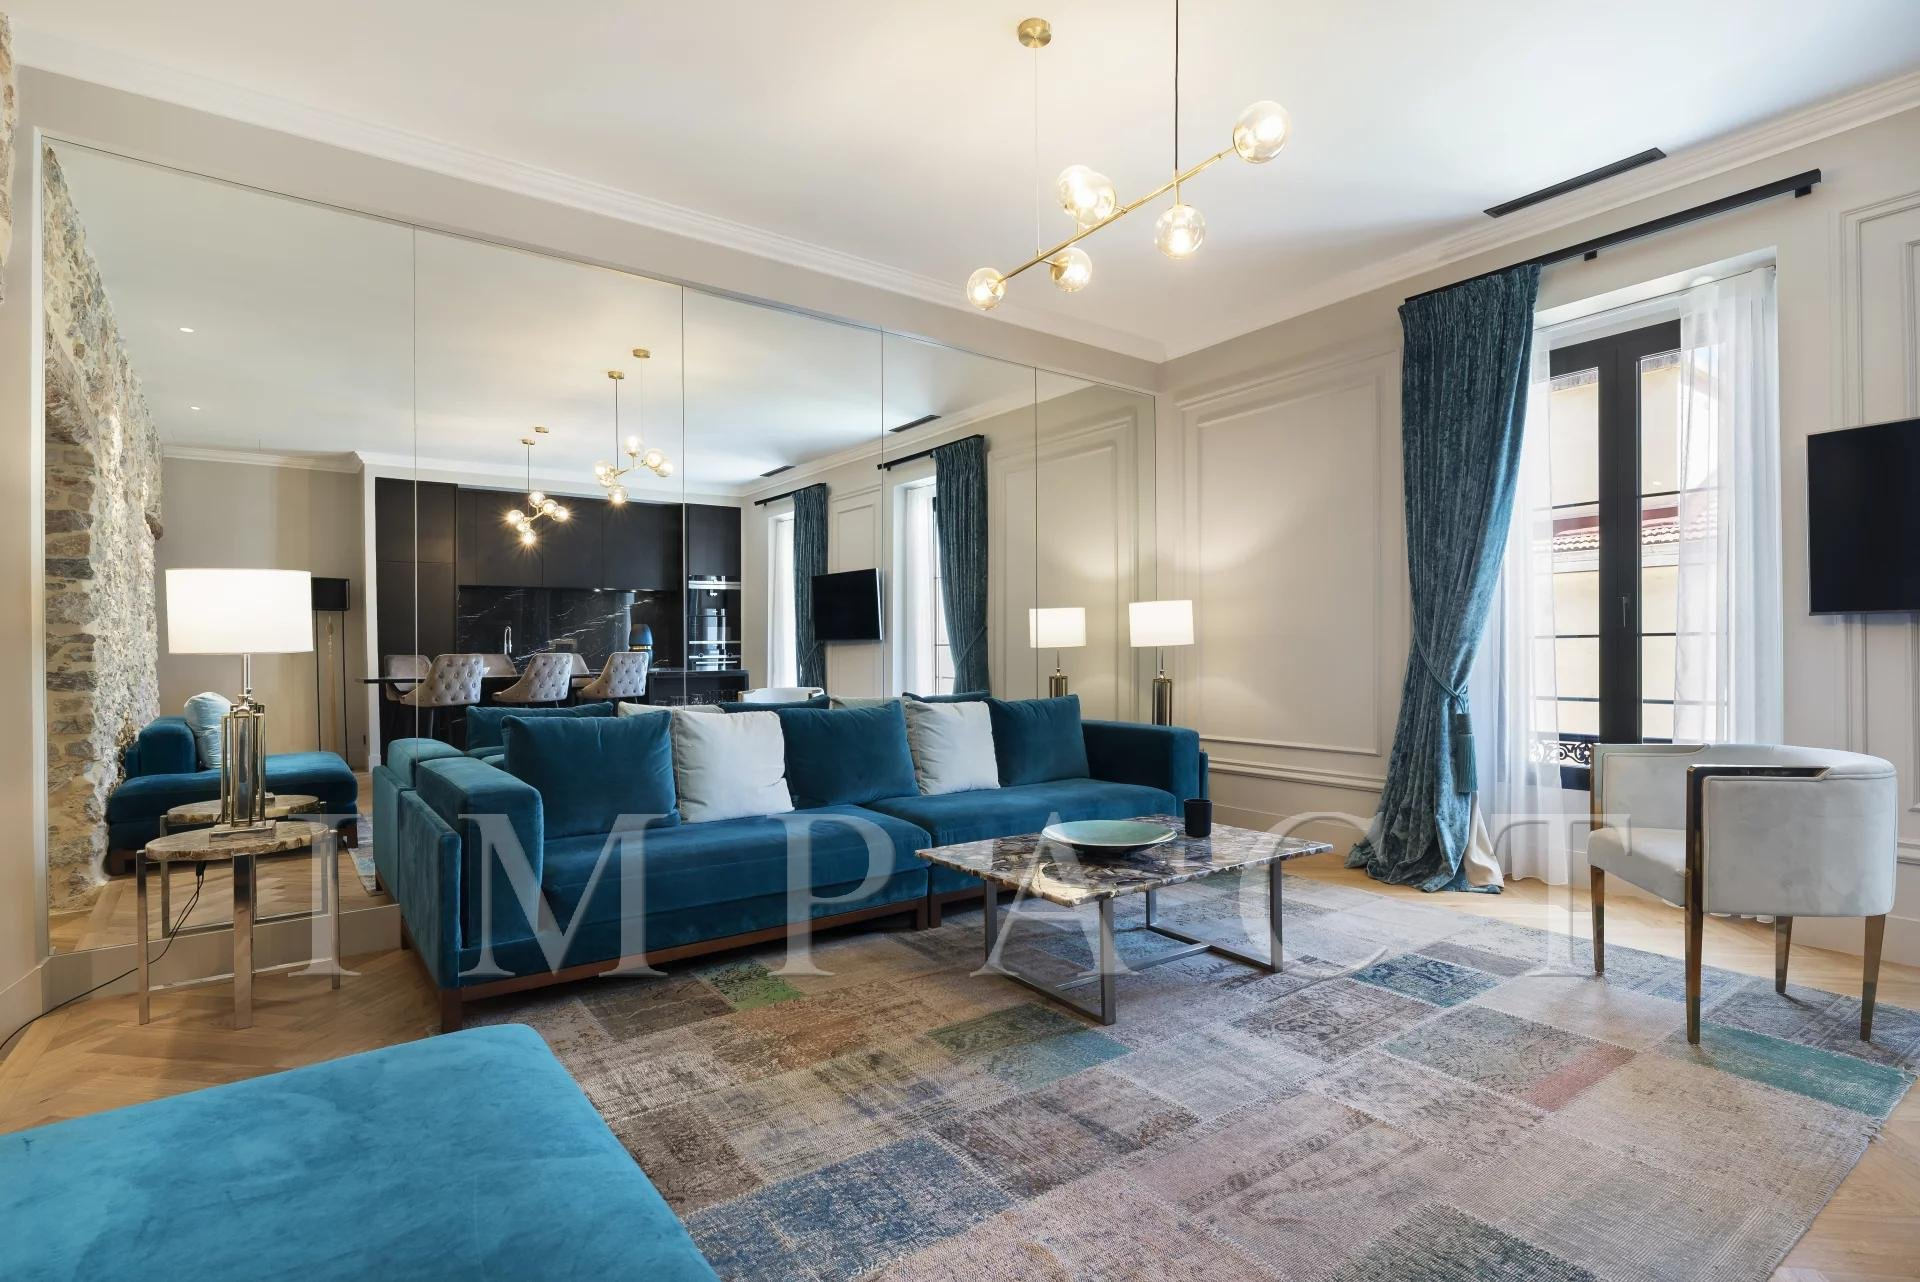 4 bedrooms apartment for sale  Center of  Cannes